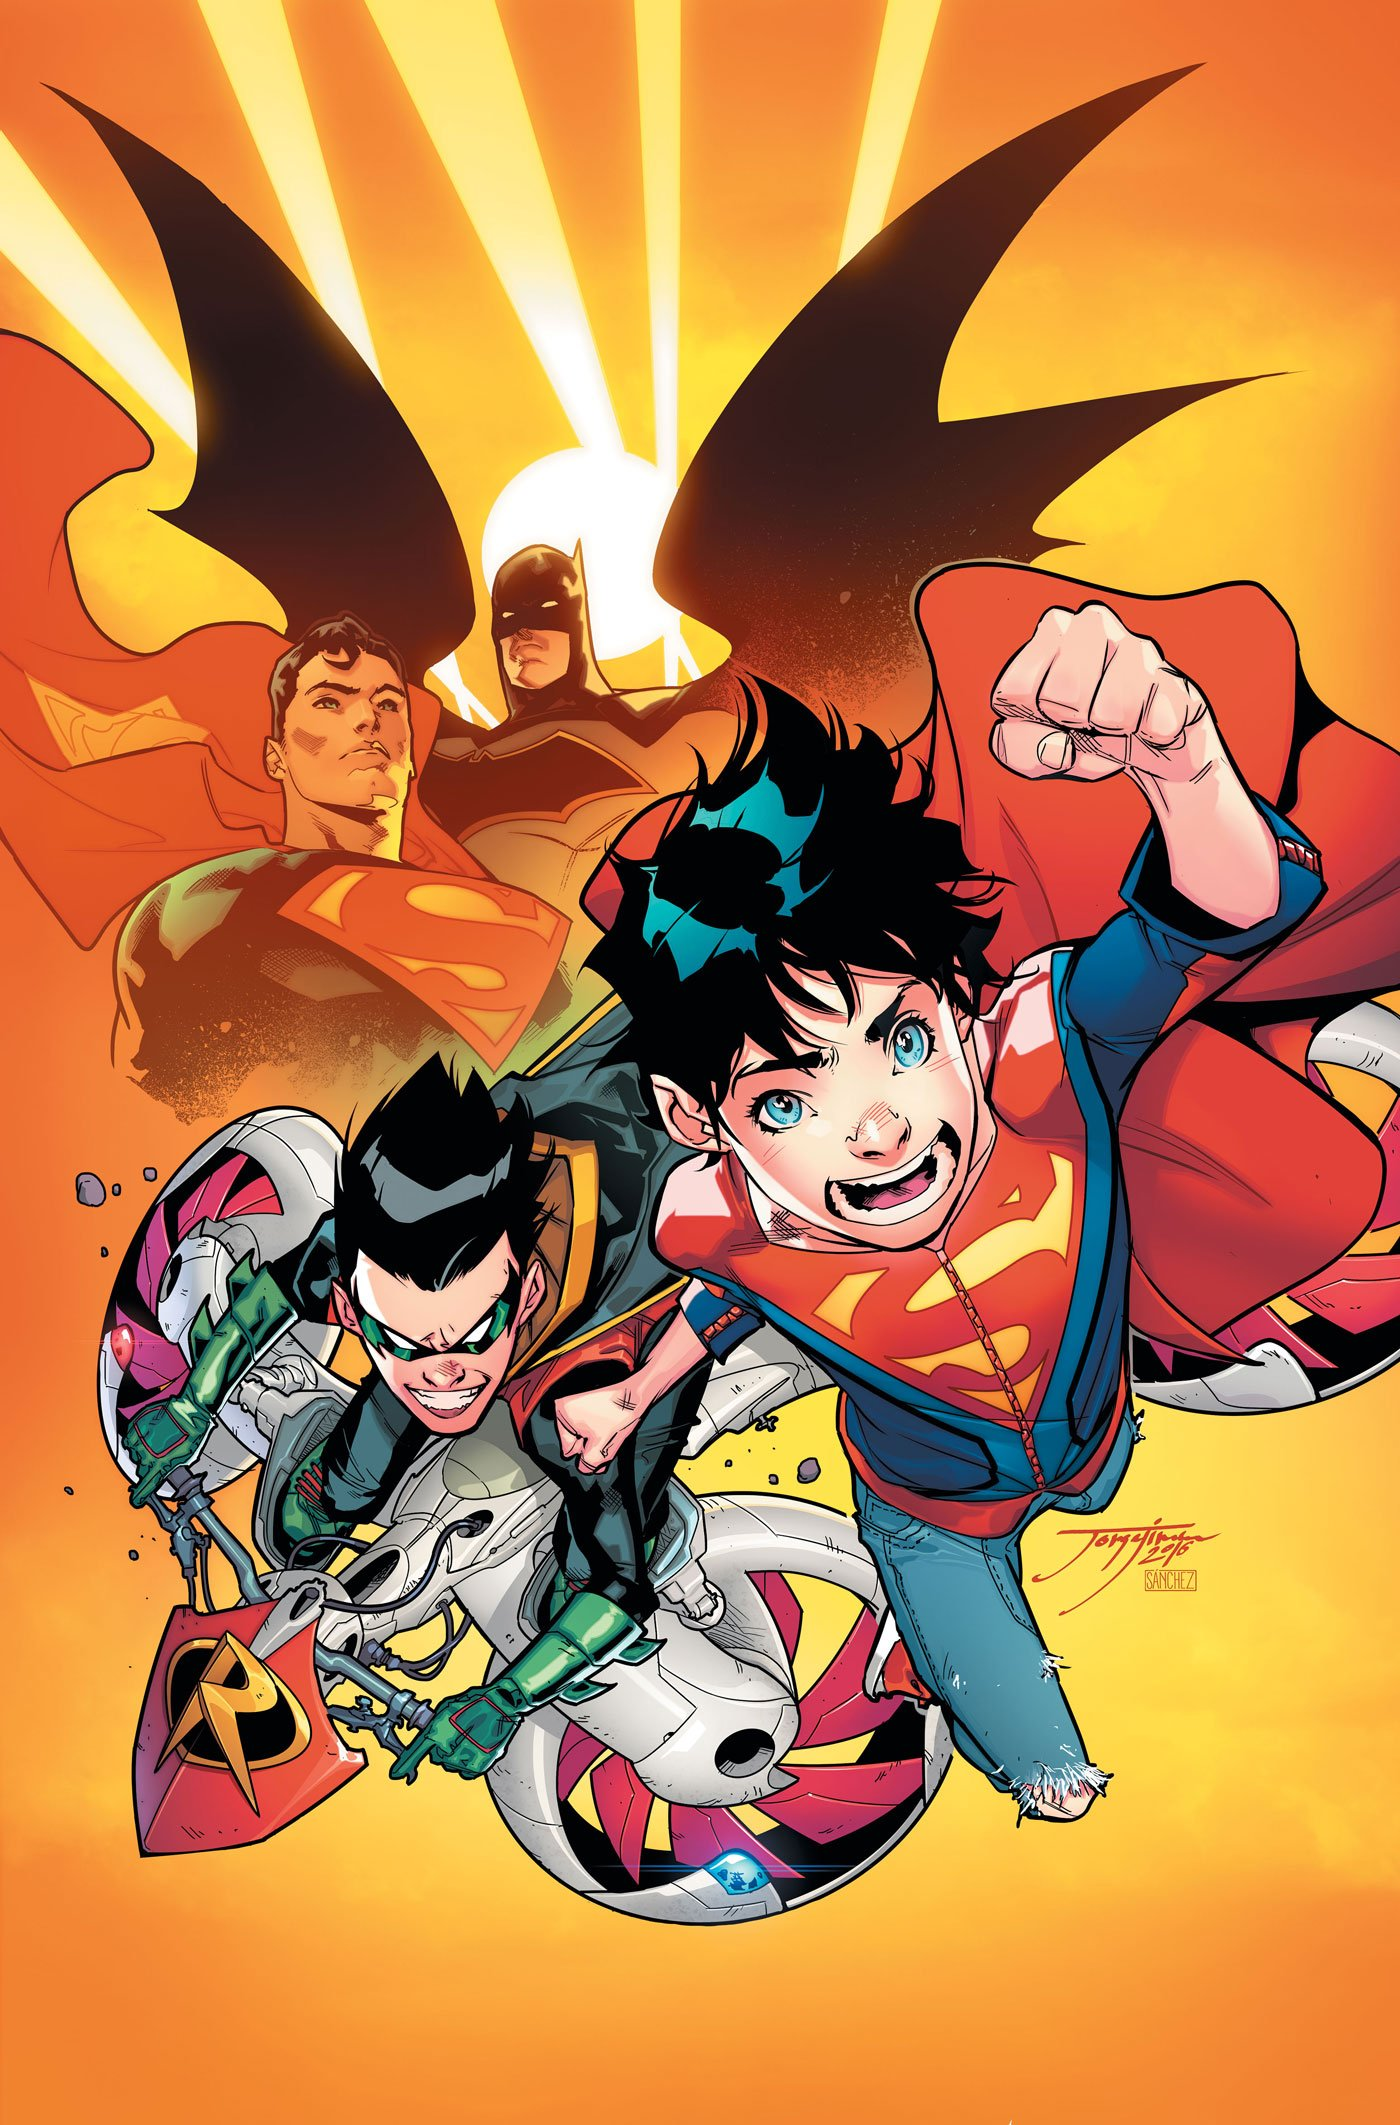 Robin And Superboy Unite In First Look At Super Sons #1